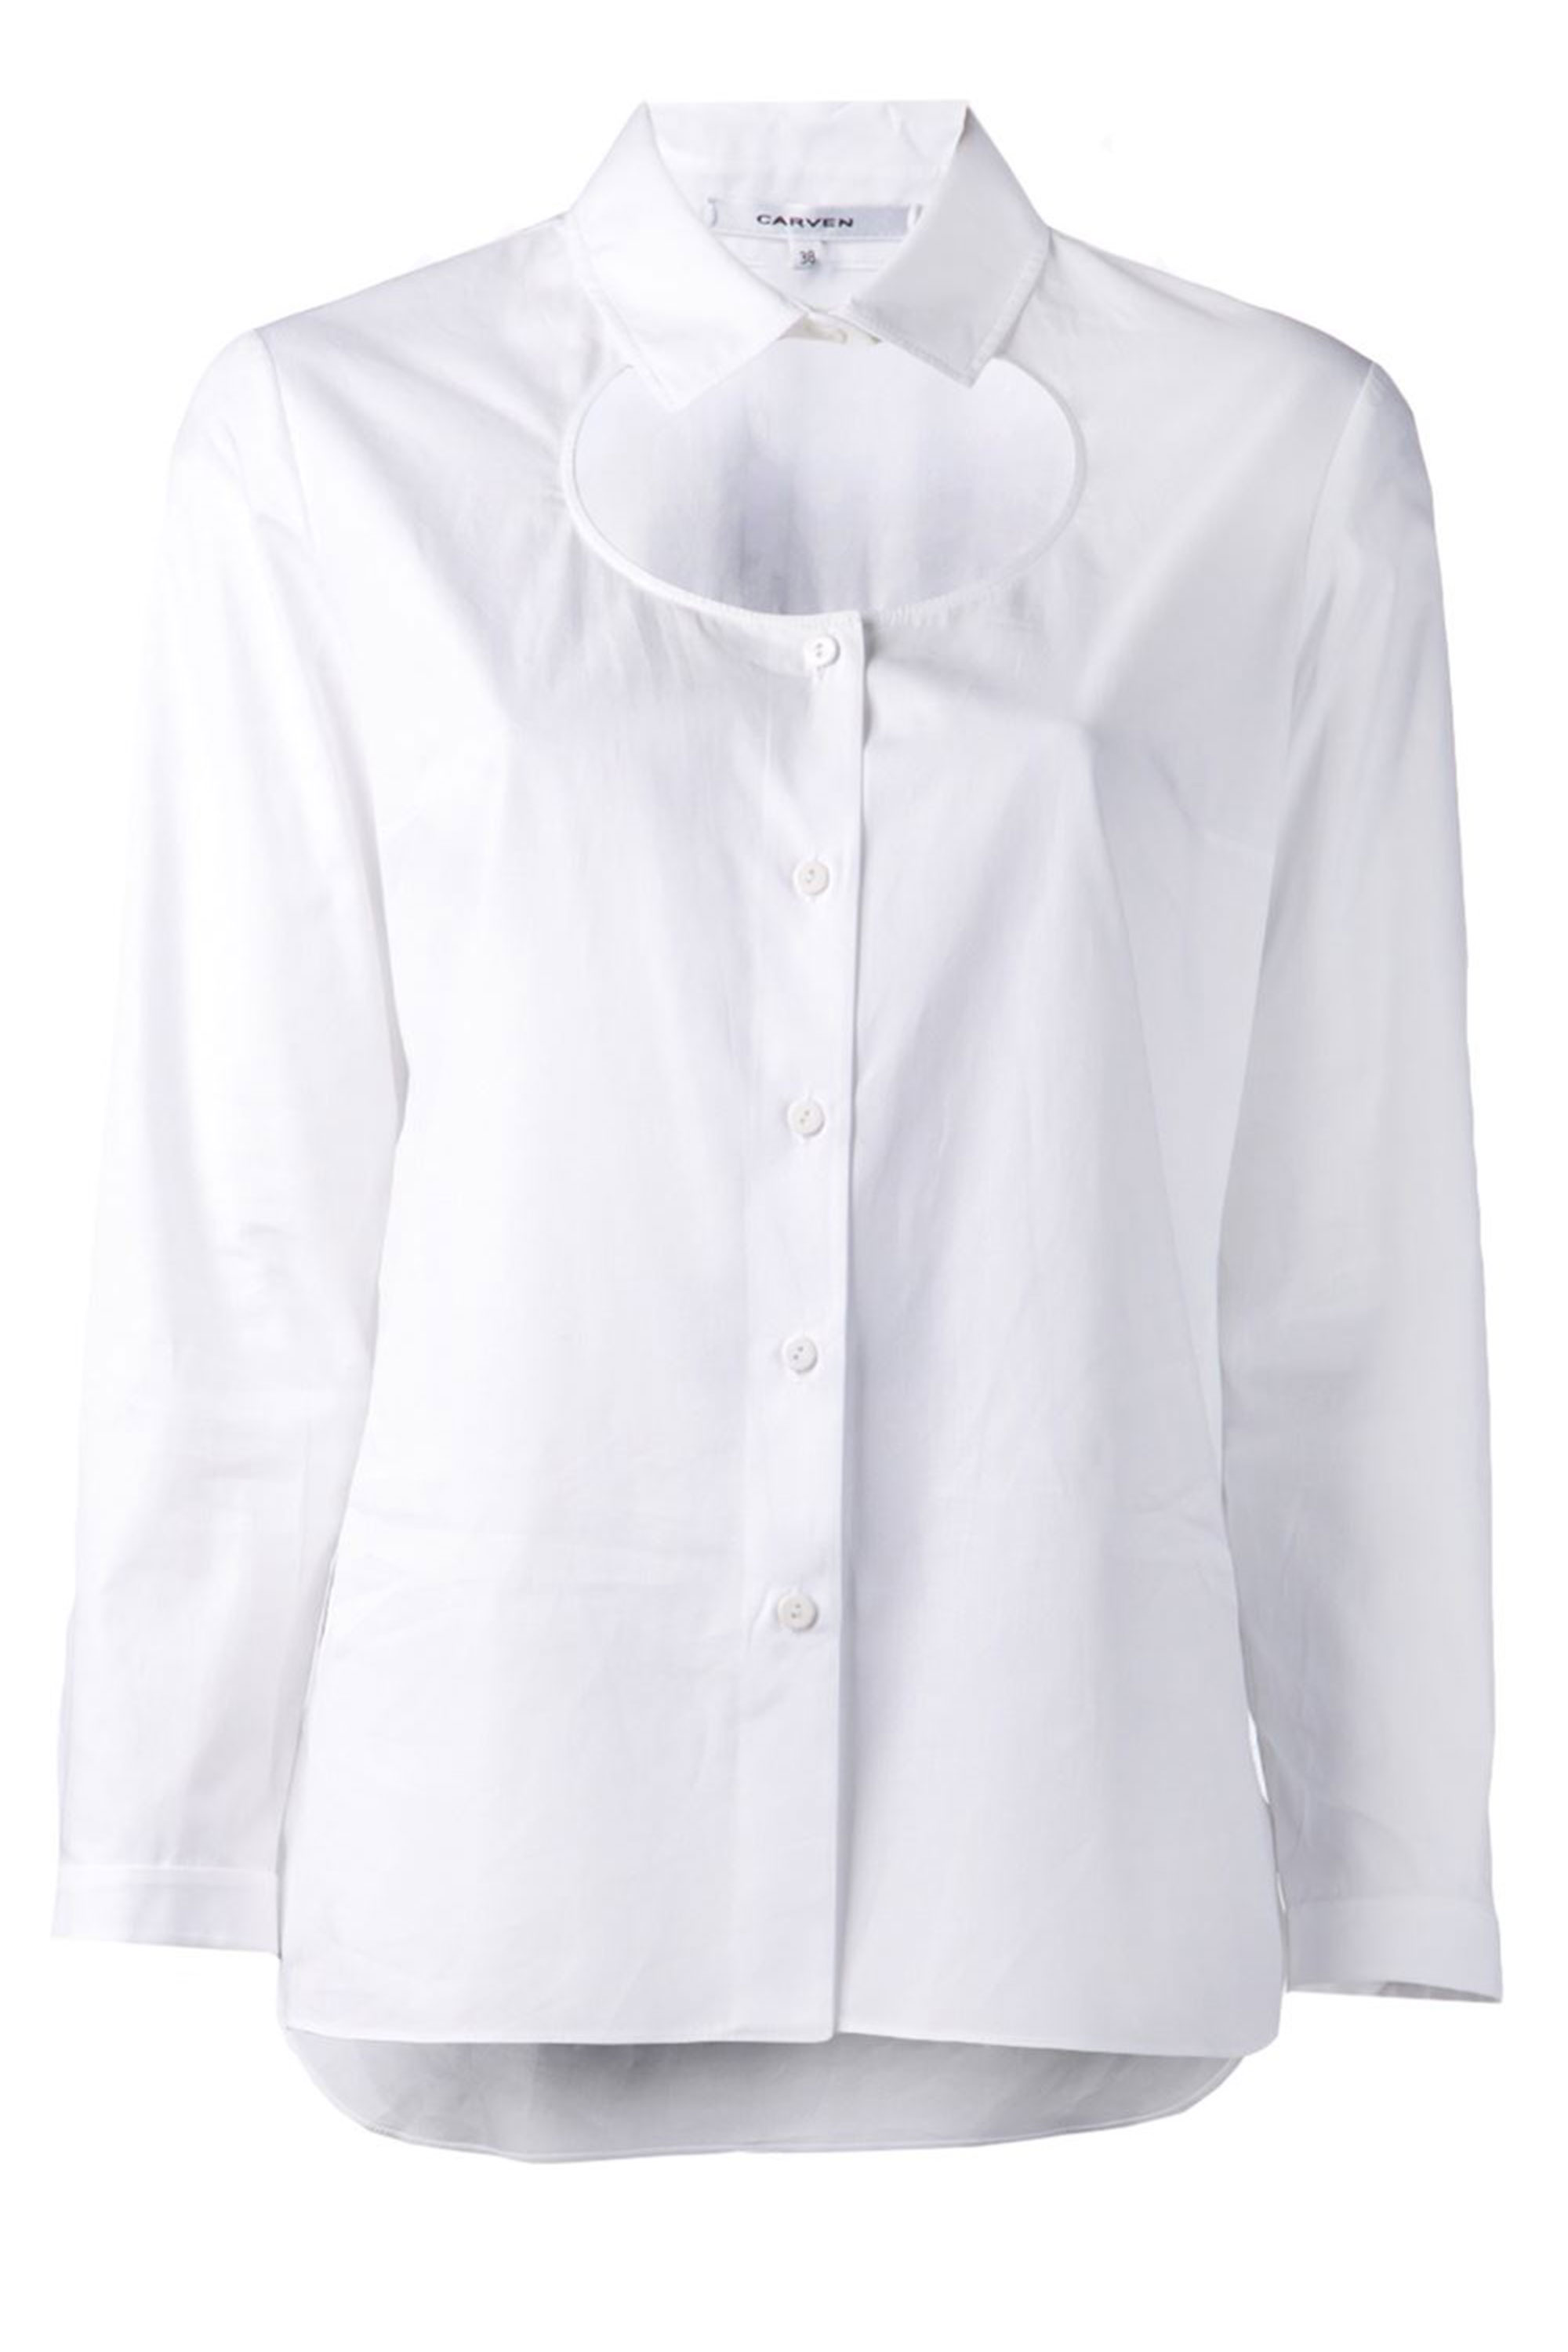 13 Classic White Shirts - 13 Fresh Takes on the Classic White ...